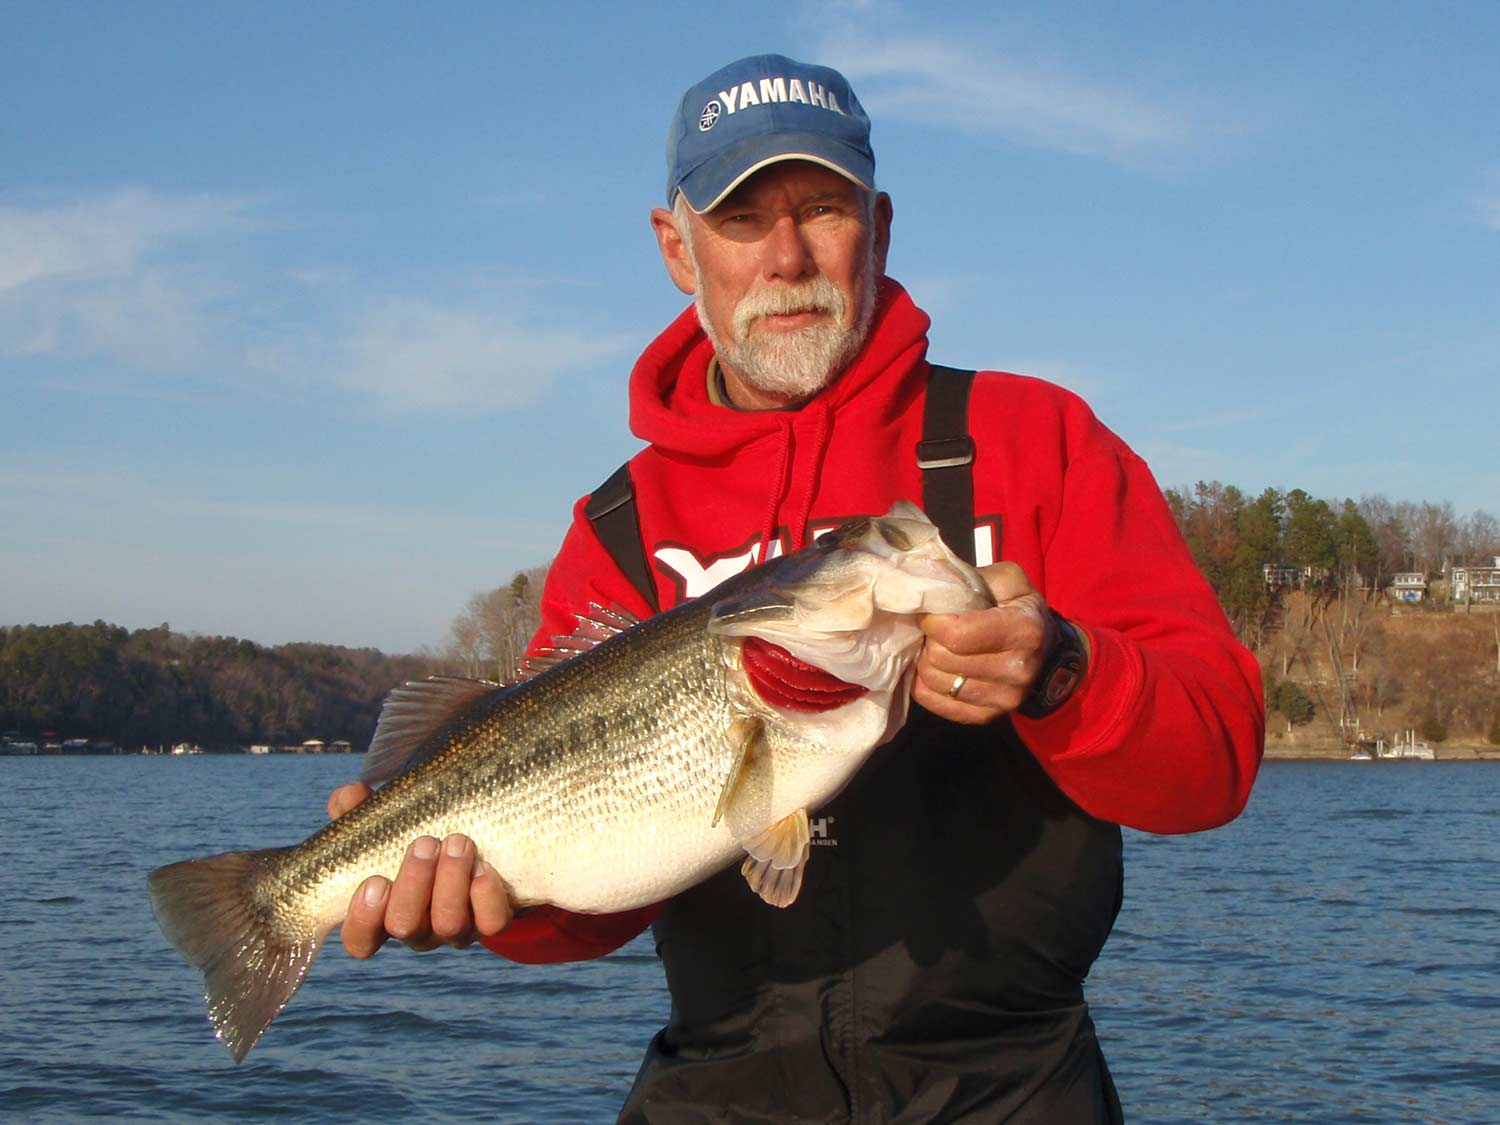 An angler in red holding a largemouth bass.